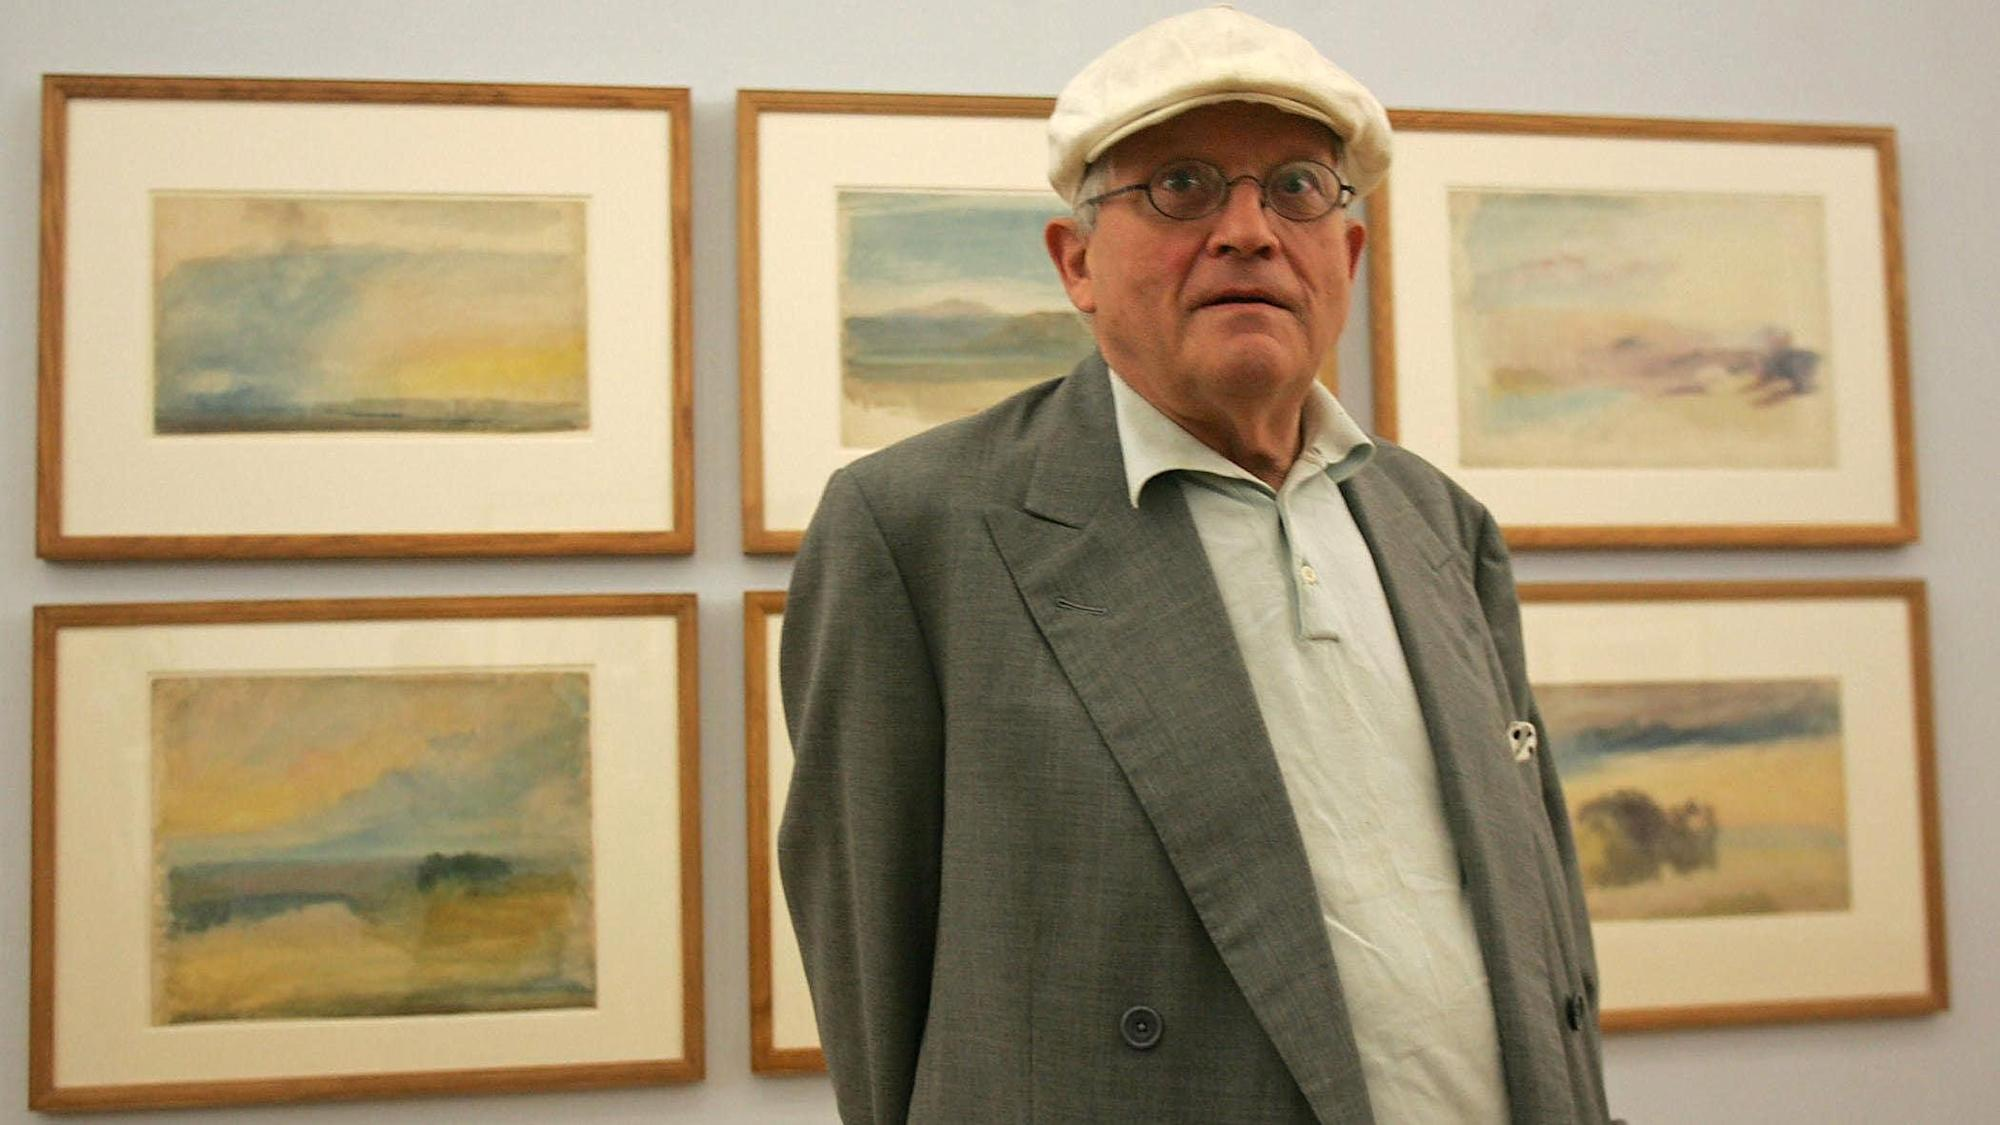 David Hockney artwork to be shown in Piccadilly Circus